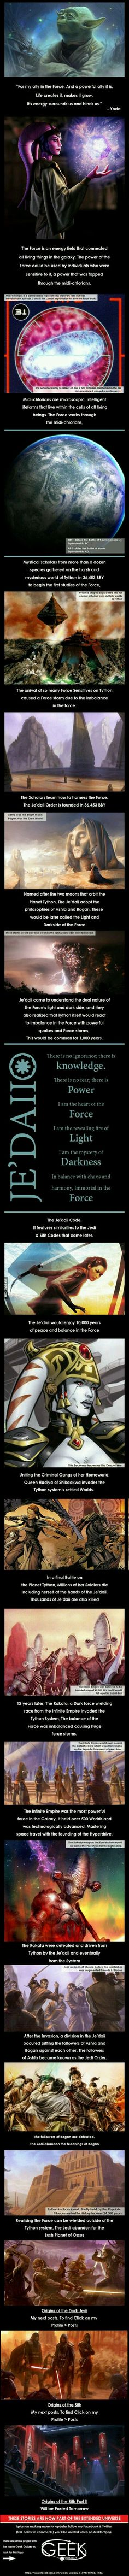 Origins of the Jedi and Force